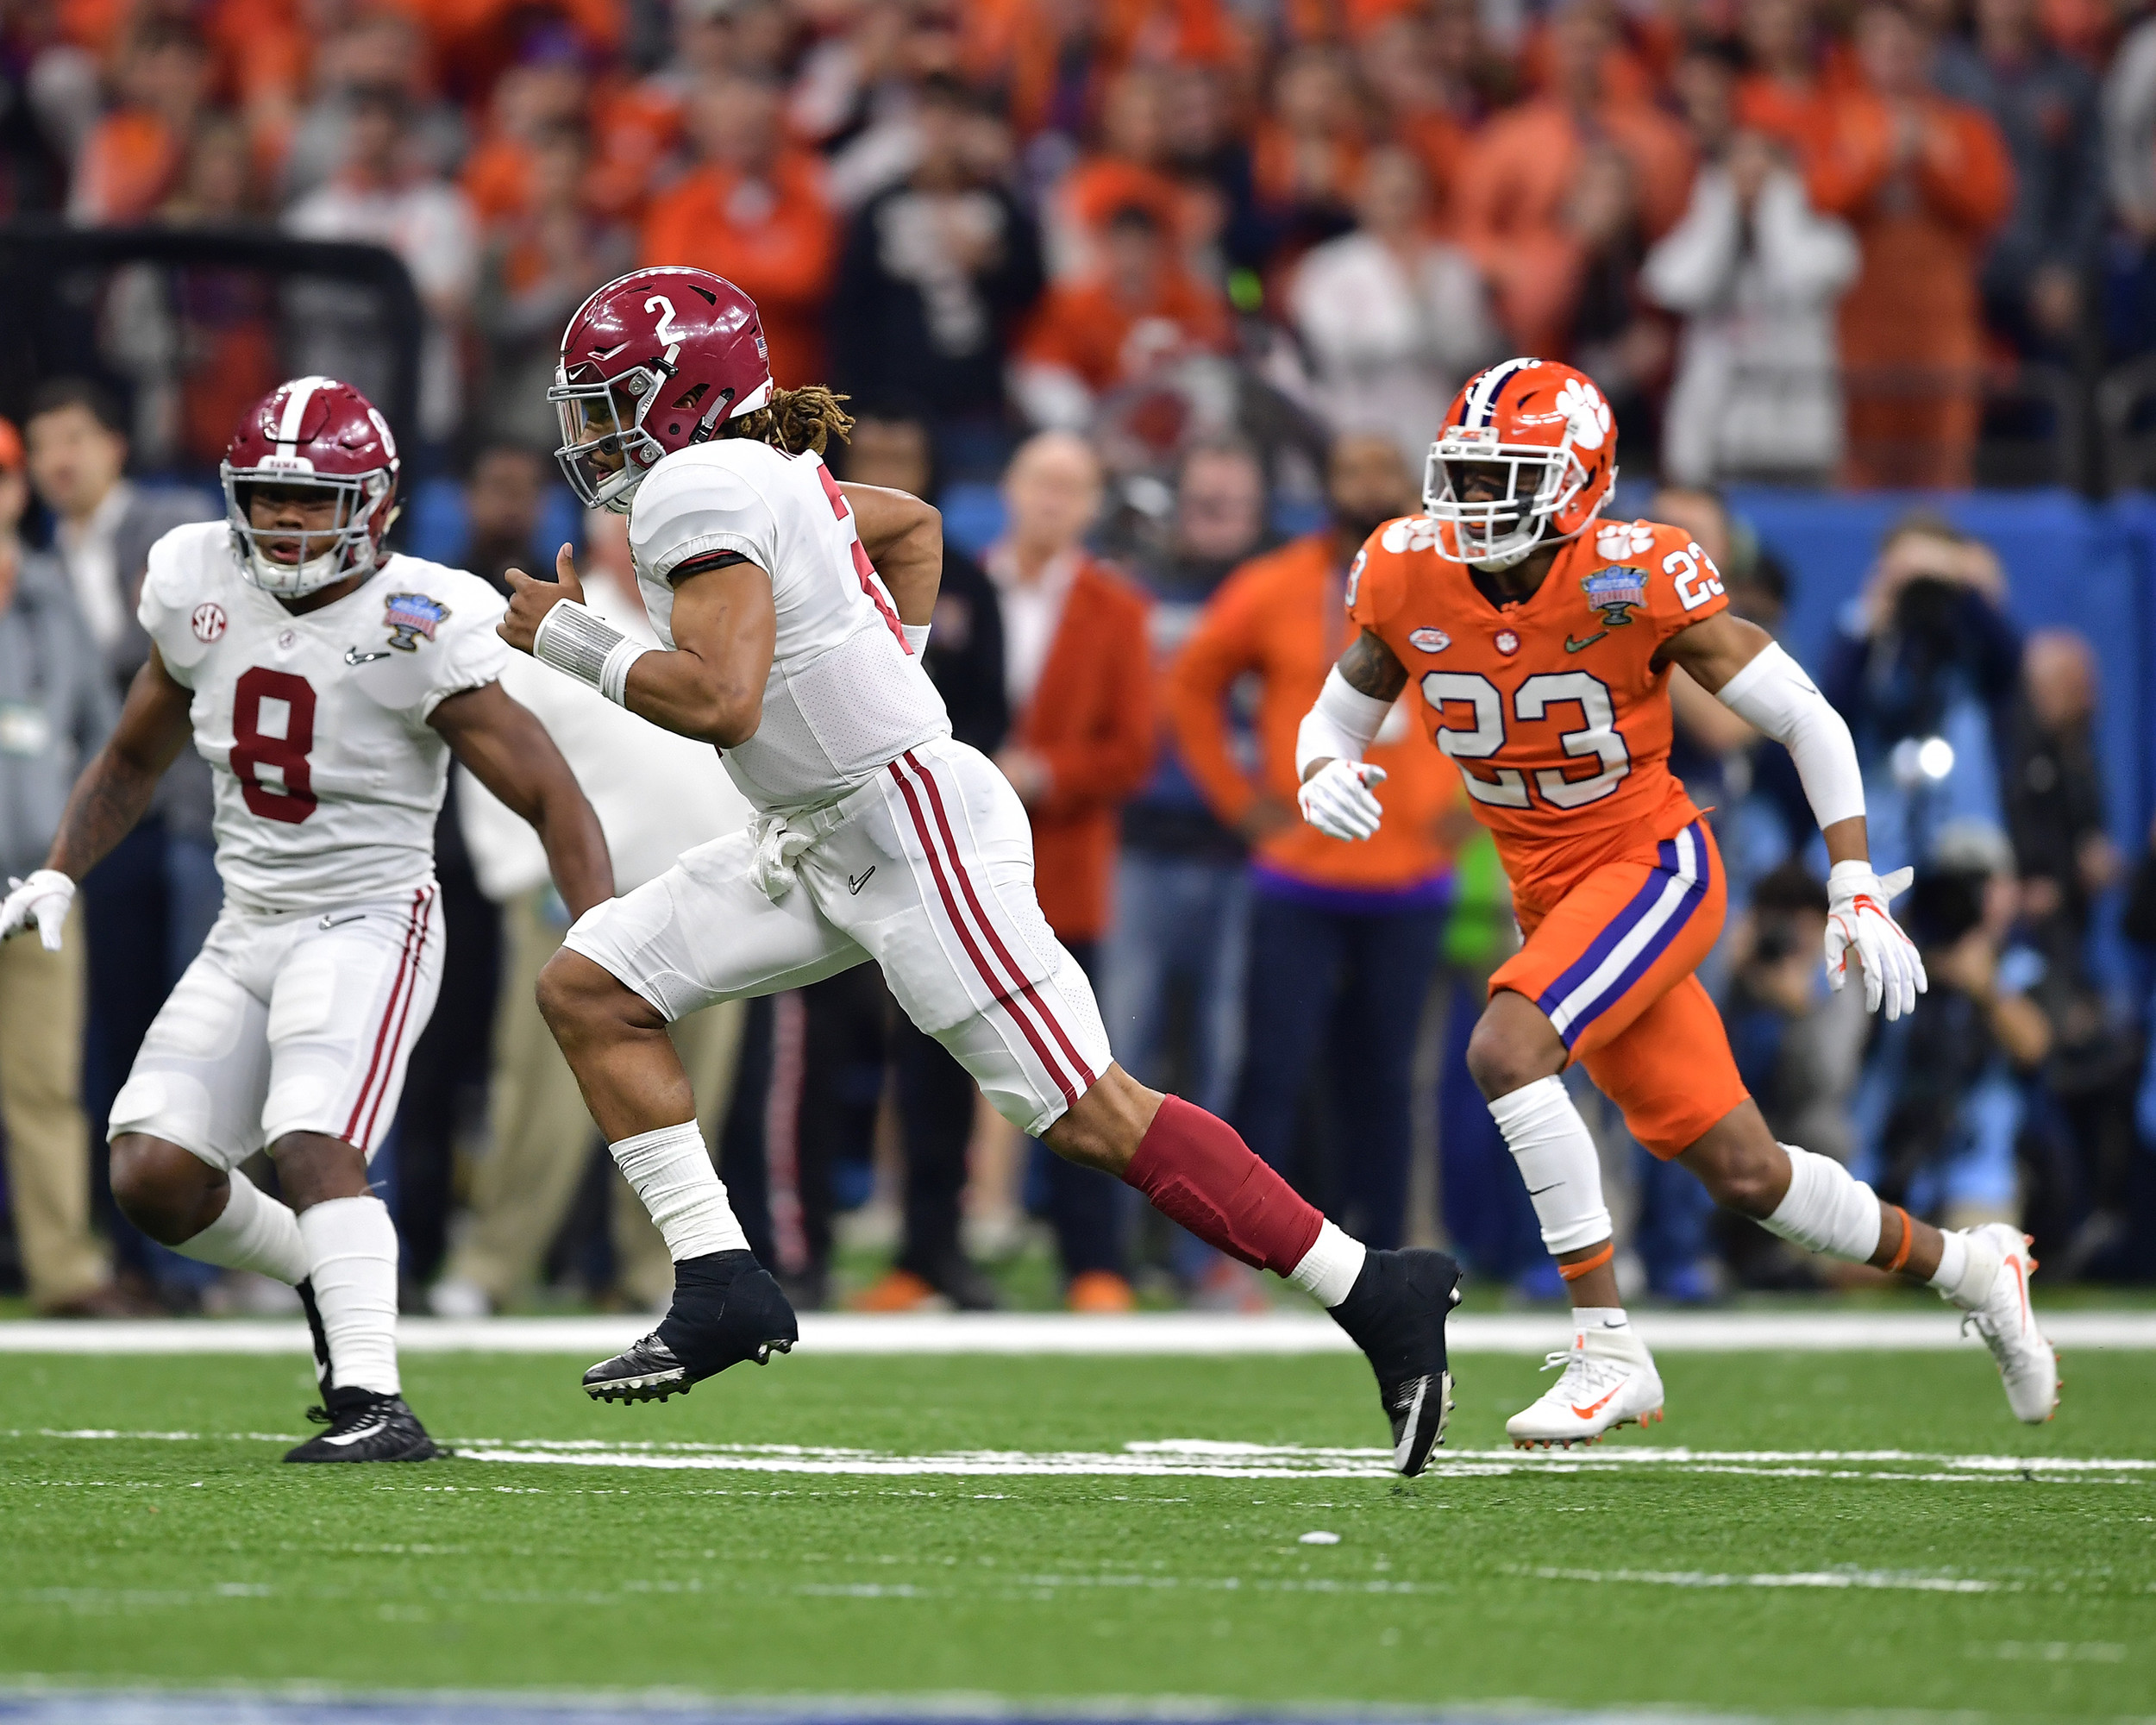 Alabama Crimson Tide quarterback Jalen Hurts (2) with a quarterback keeper in the first half of the 2018 AllState Sugar Bowl on Jan. 1, 2018, at the Mercedes-Benz SuperDome in New Orleans, La. Alabama won the game 24-6. (Photo by Lee Walls)